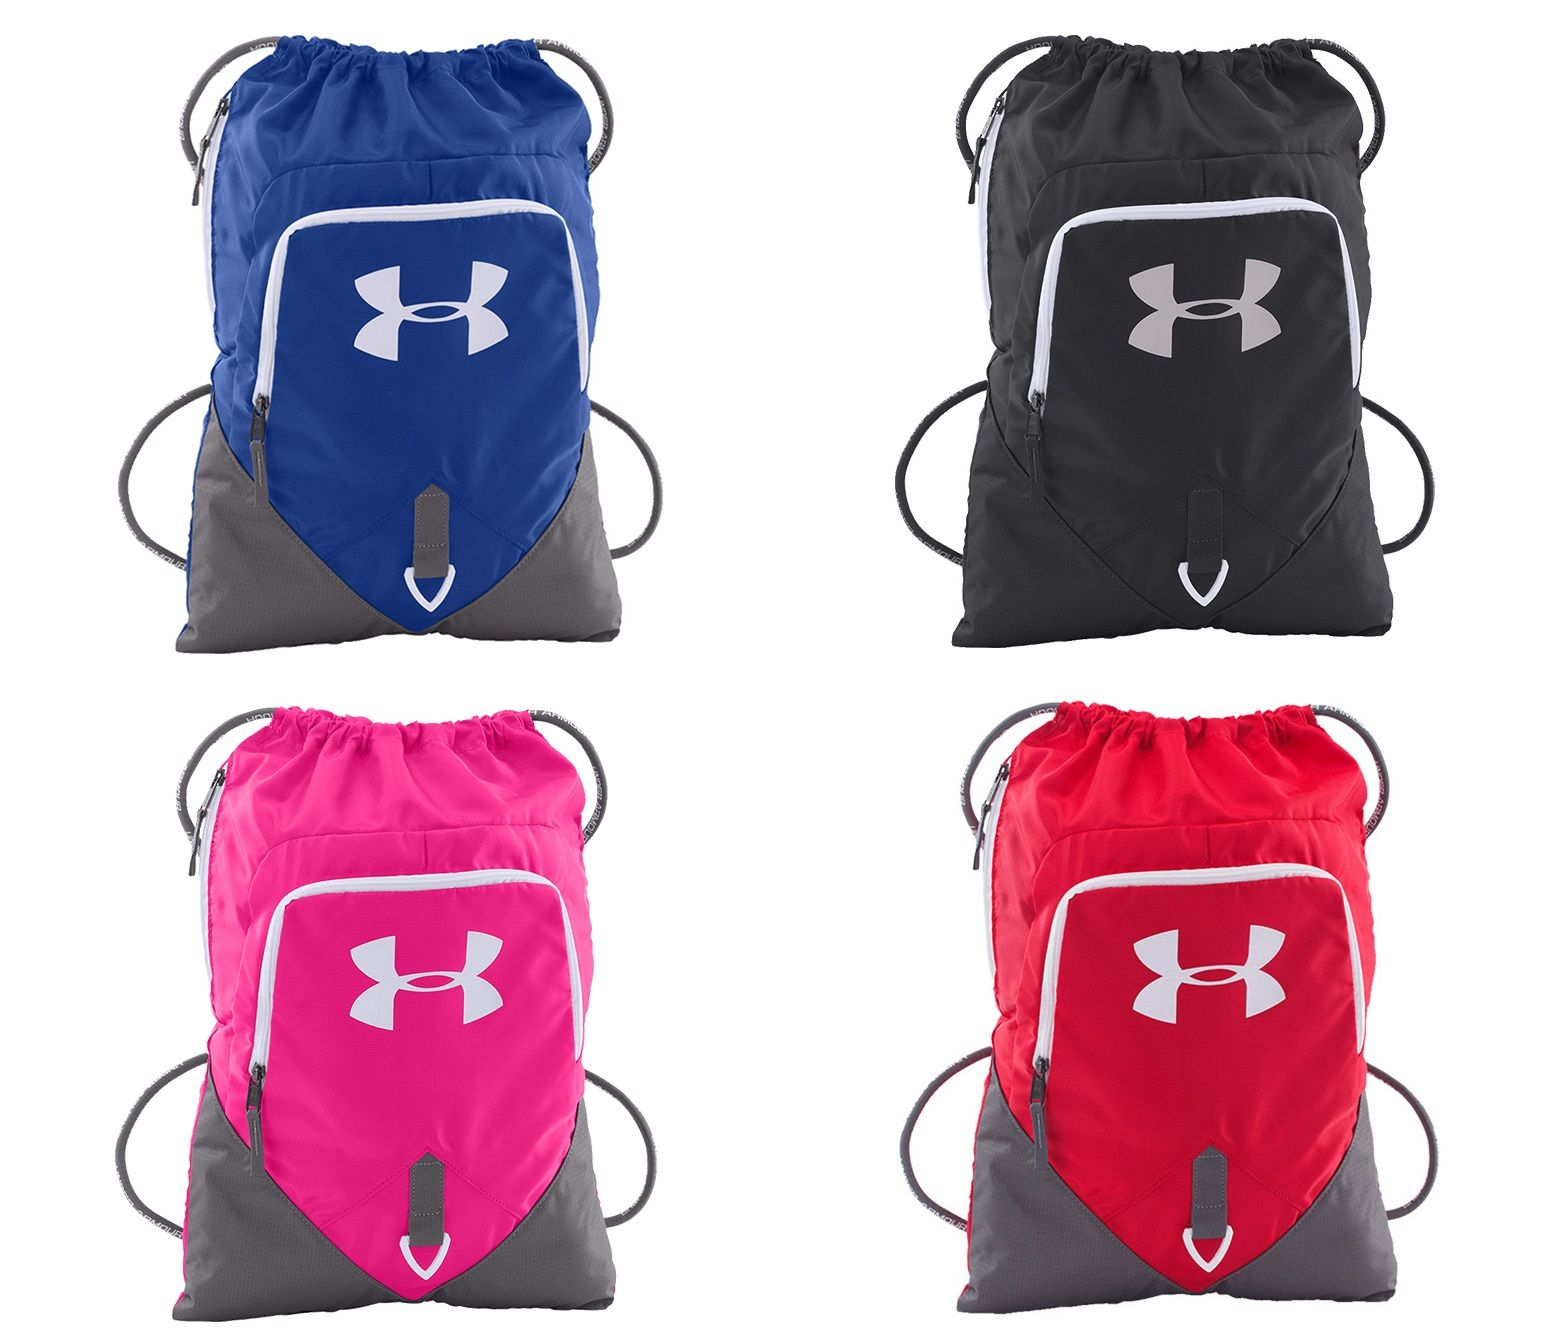 Under Armour unisex Undeniable Drawstring Backpack For Sale - Item  1616316 ebaa5cf4419f3